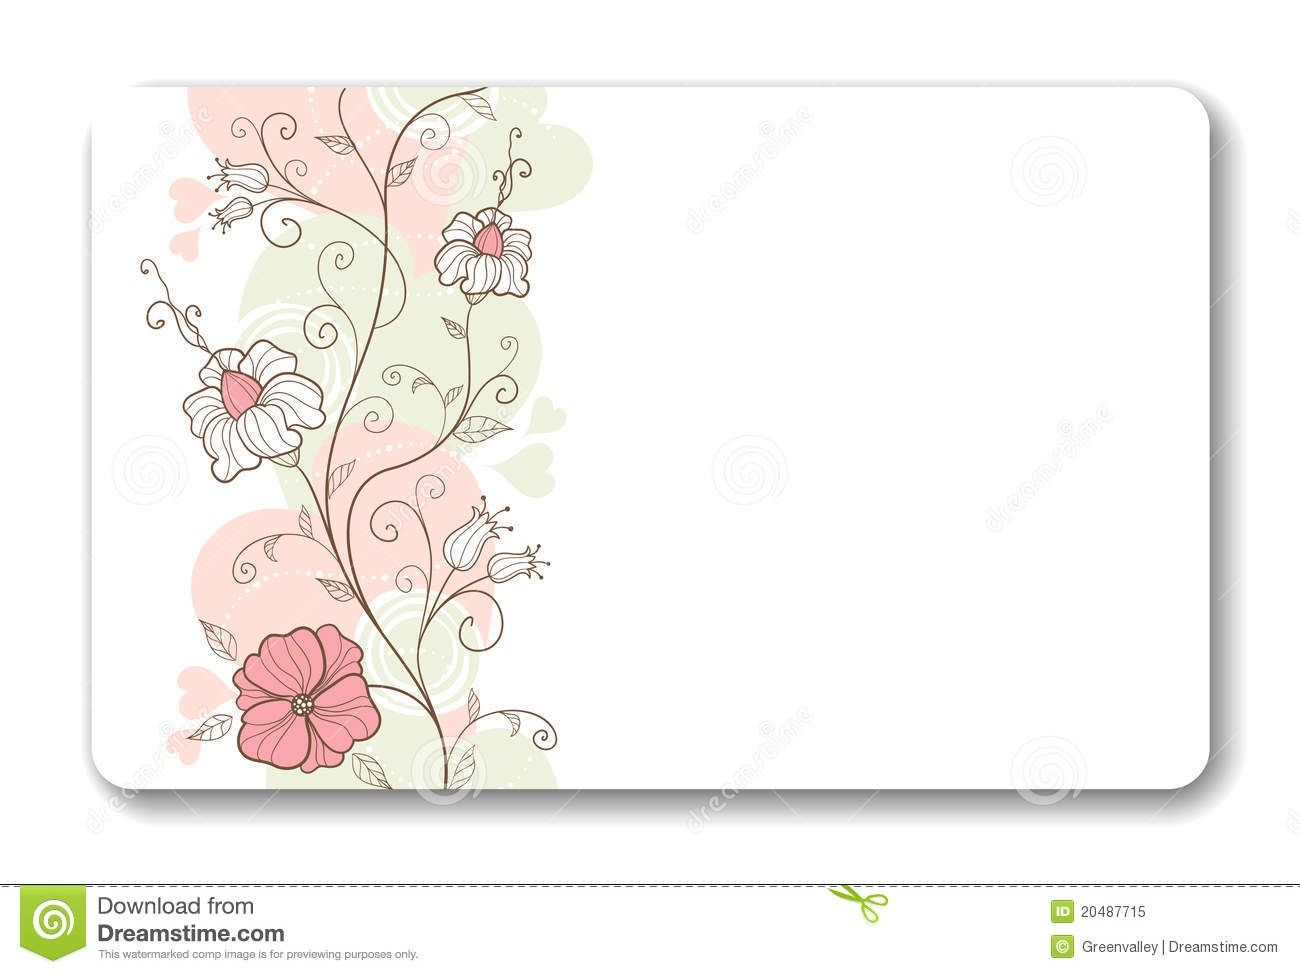 Design background name card download business card background design background name card download business card background stock image image 20487701 within design background colourmoves